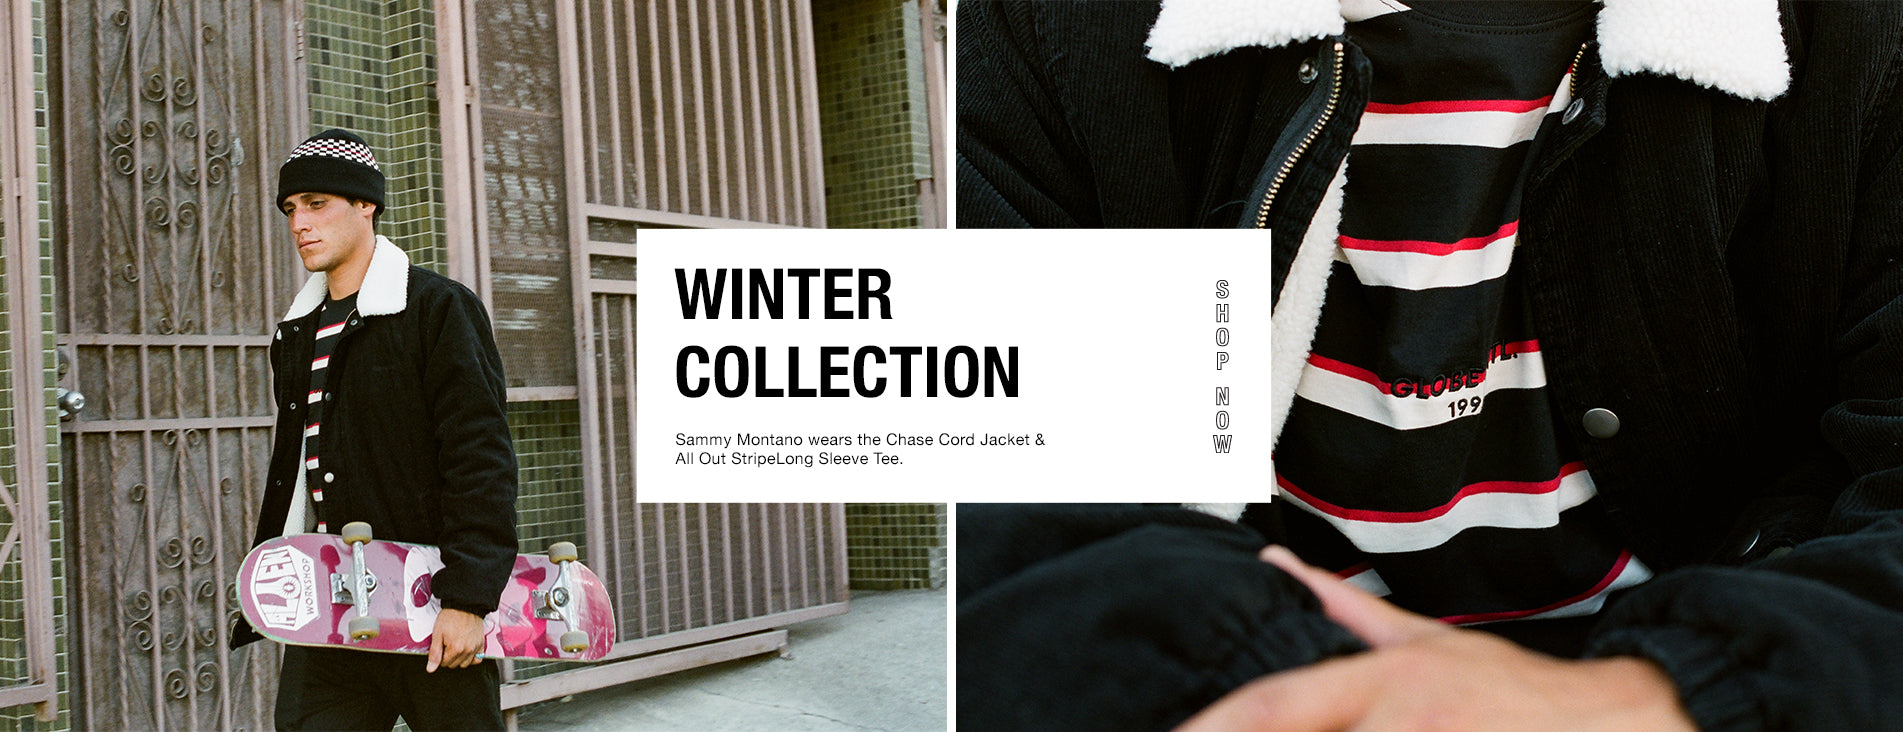 NEW COLLECTION WINTER